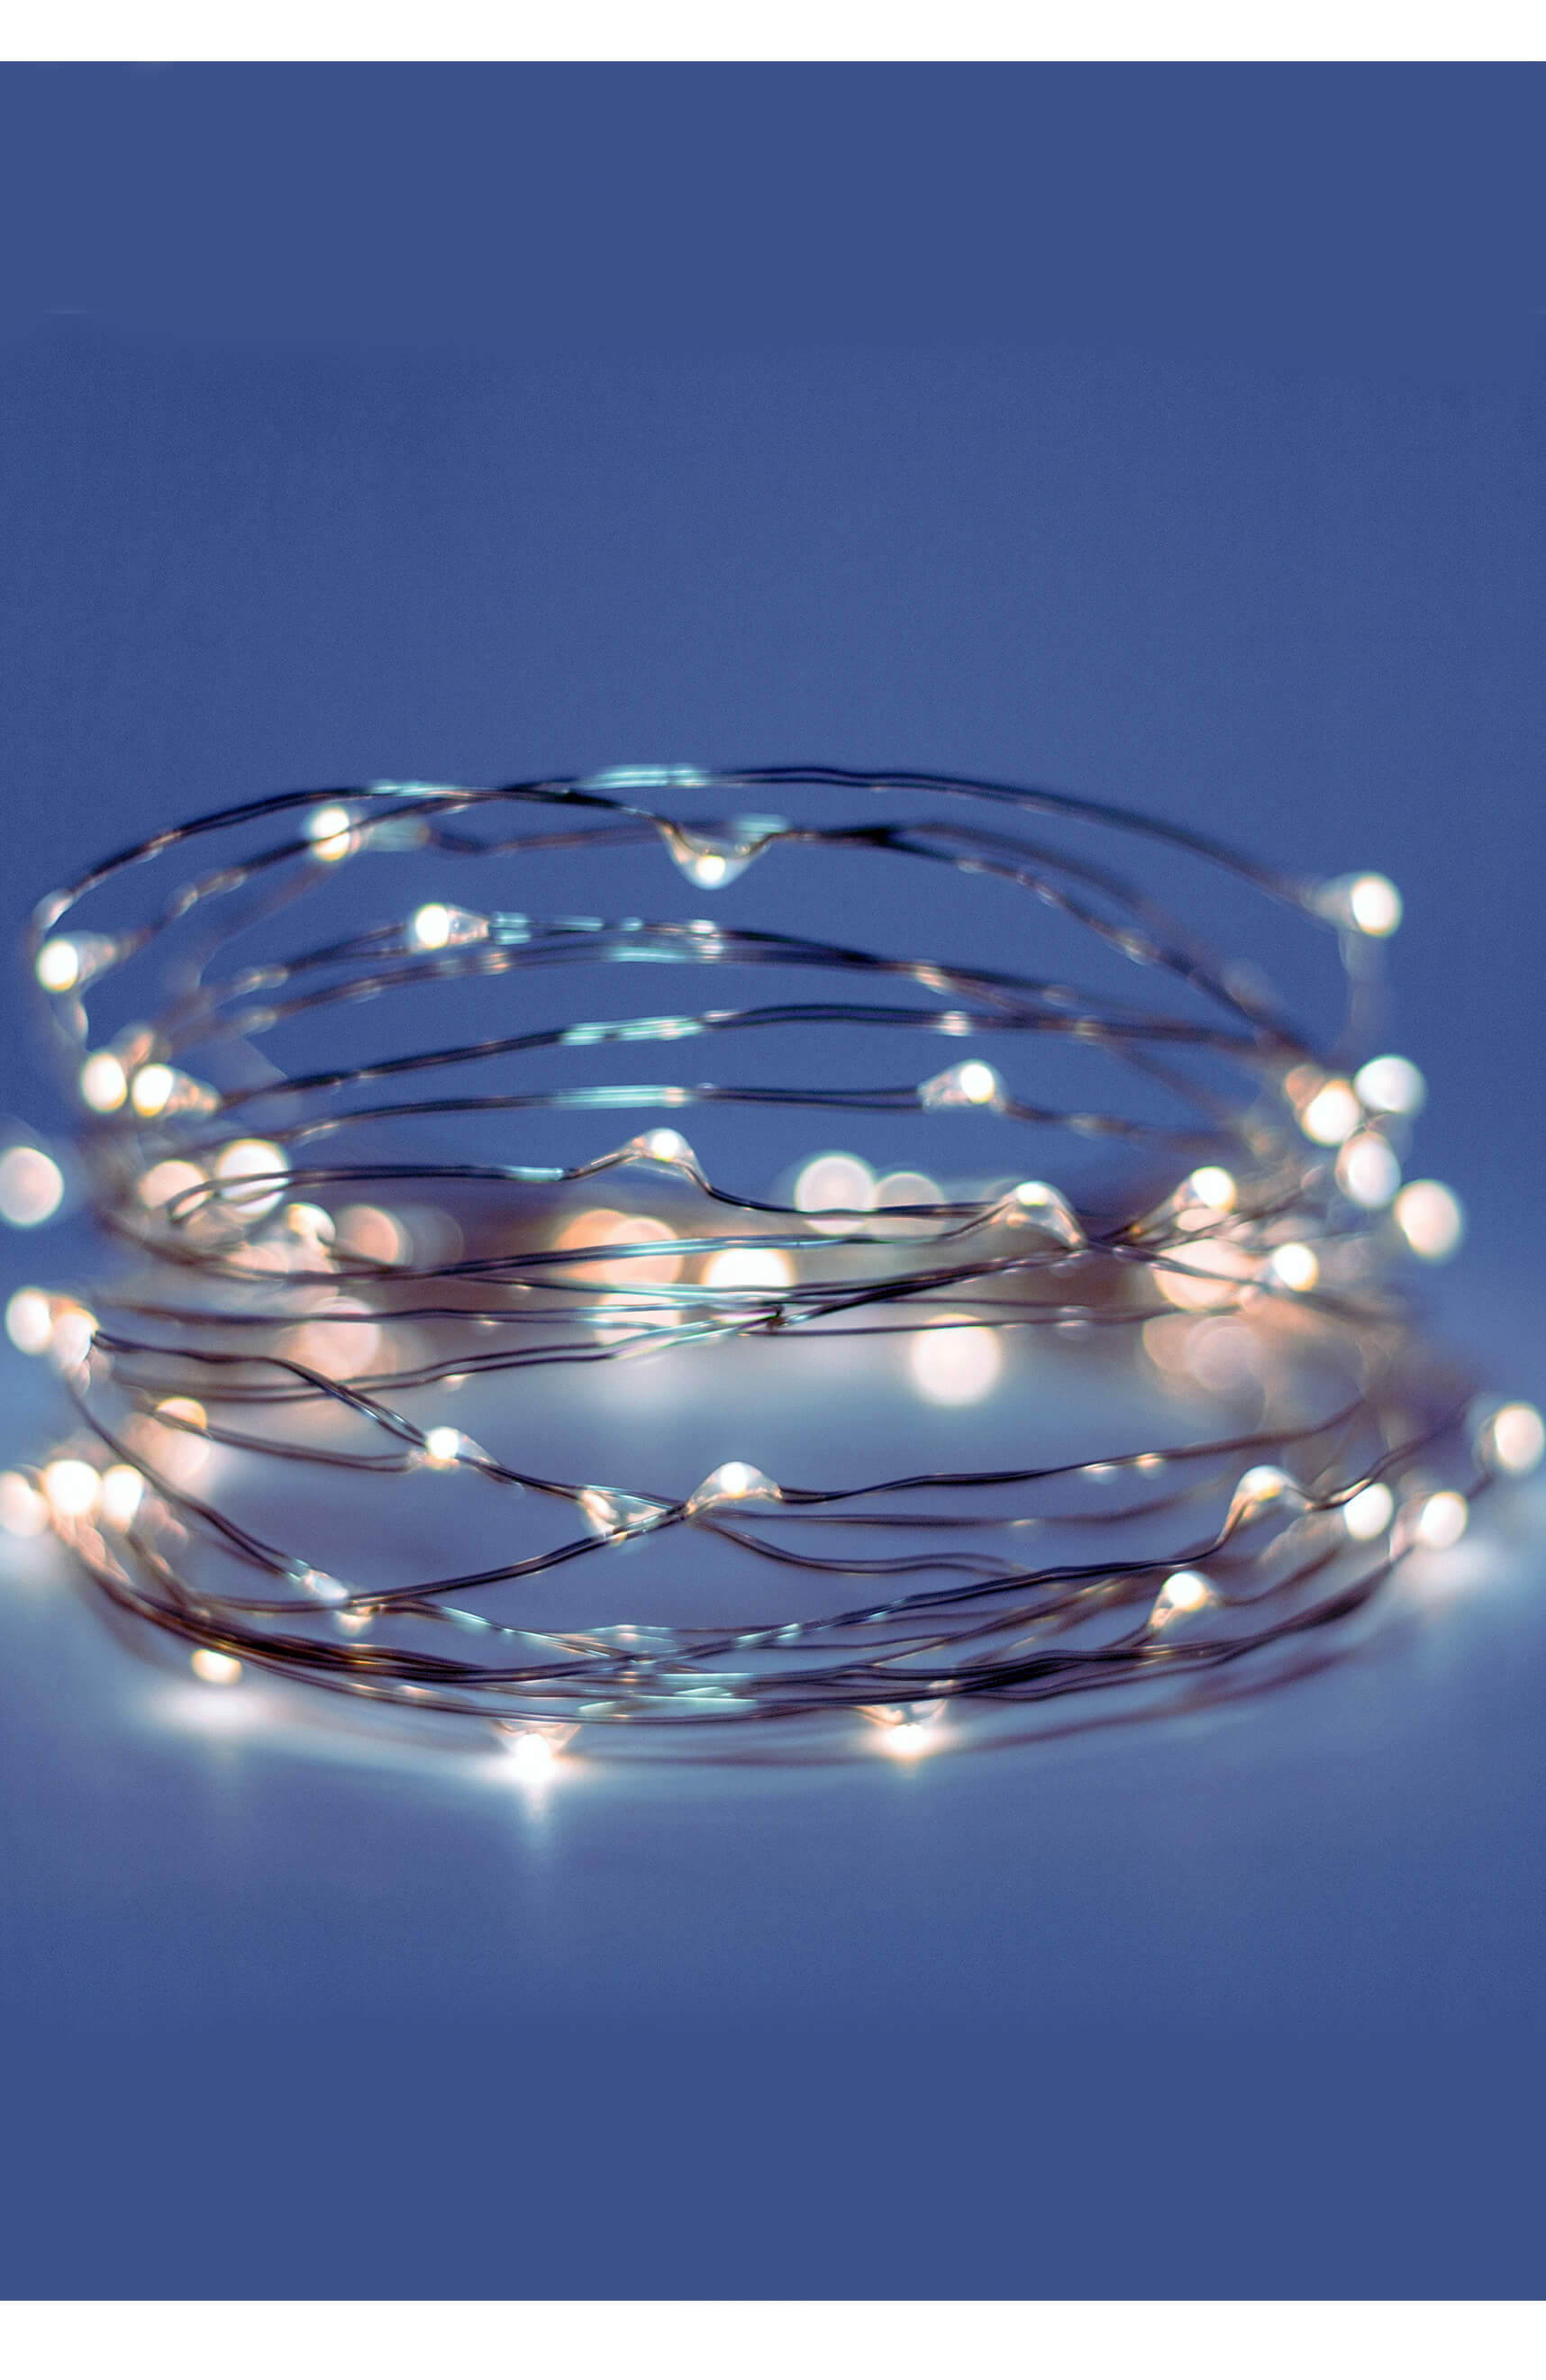 Fantasia Fairy Lights 91 Cool White LED 15 FT Battery Operated